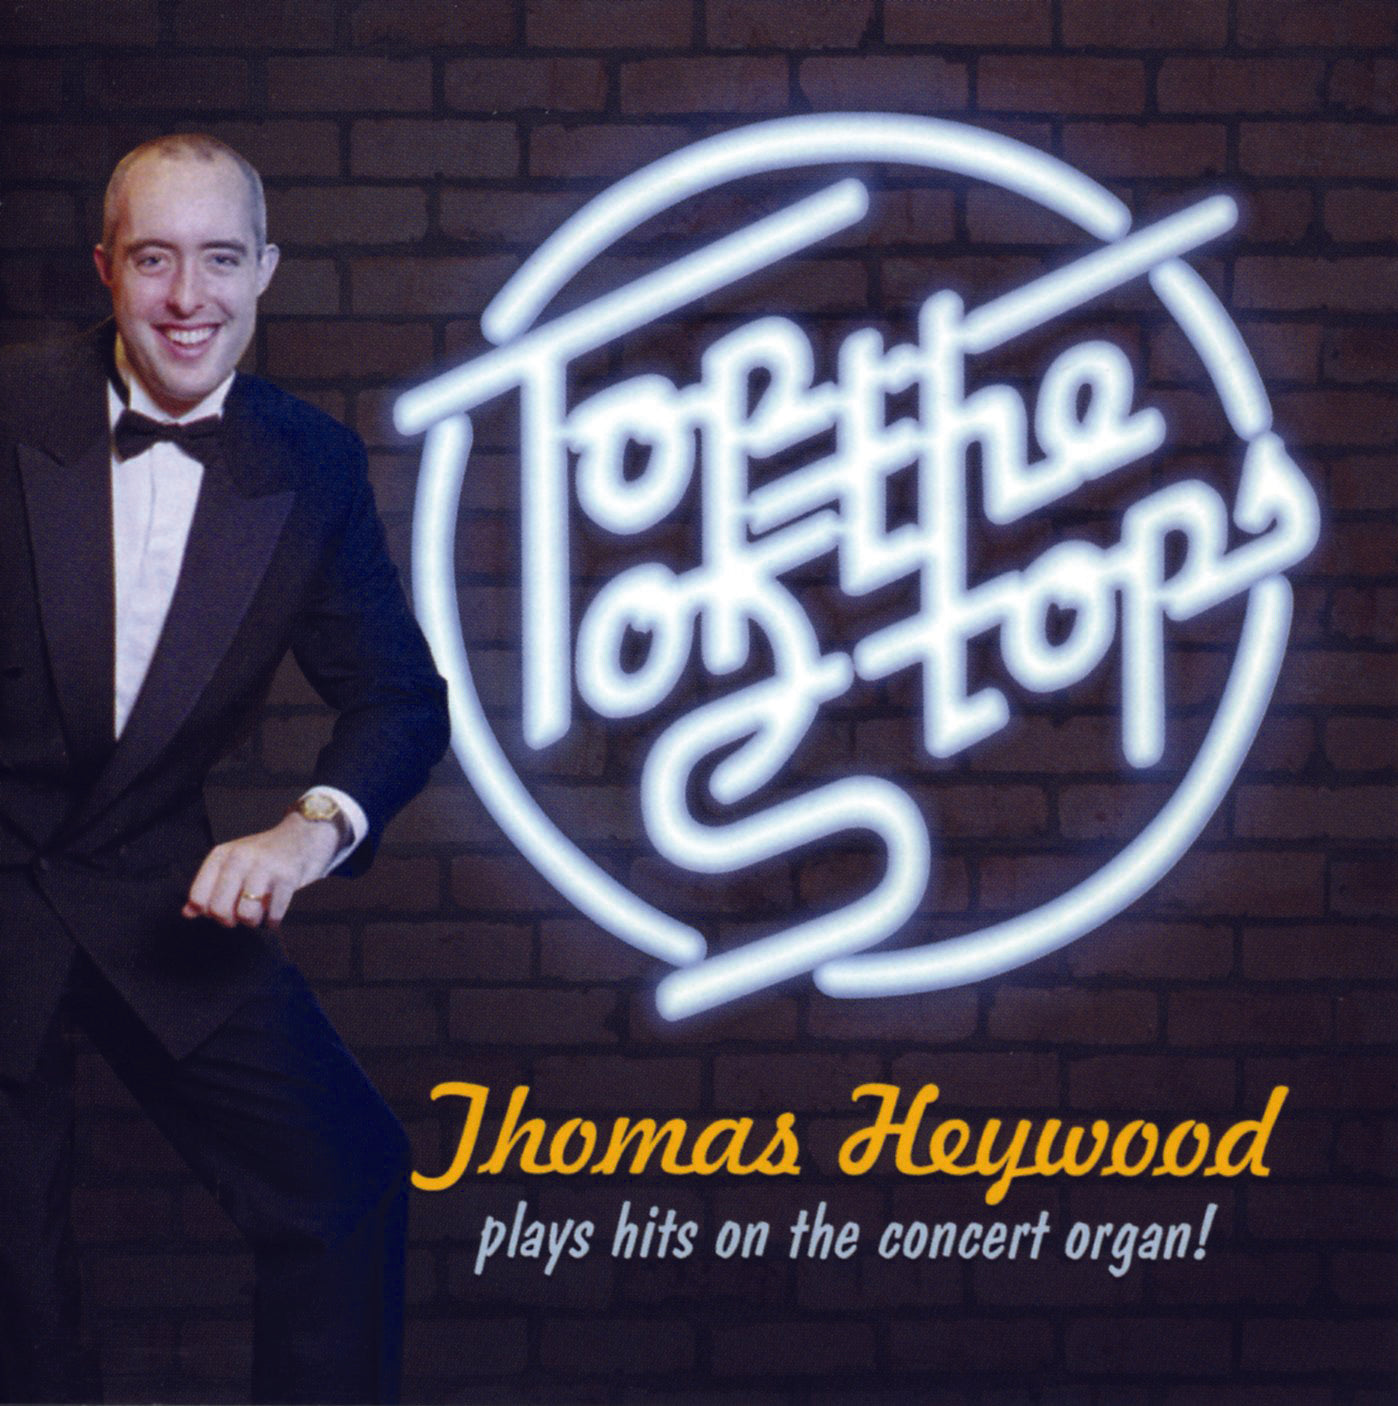 Top of the Stops! (CD) | Thomas Heywood | Concert Organ International